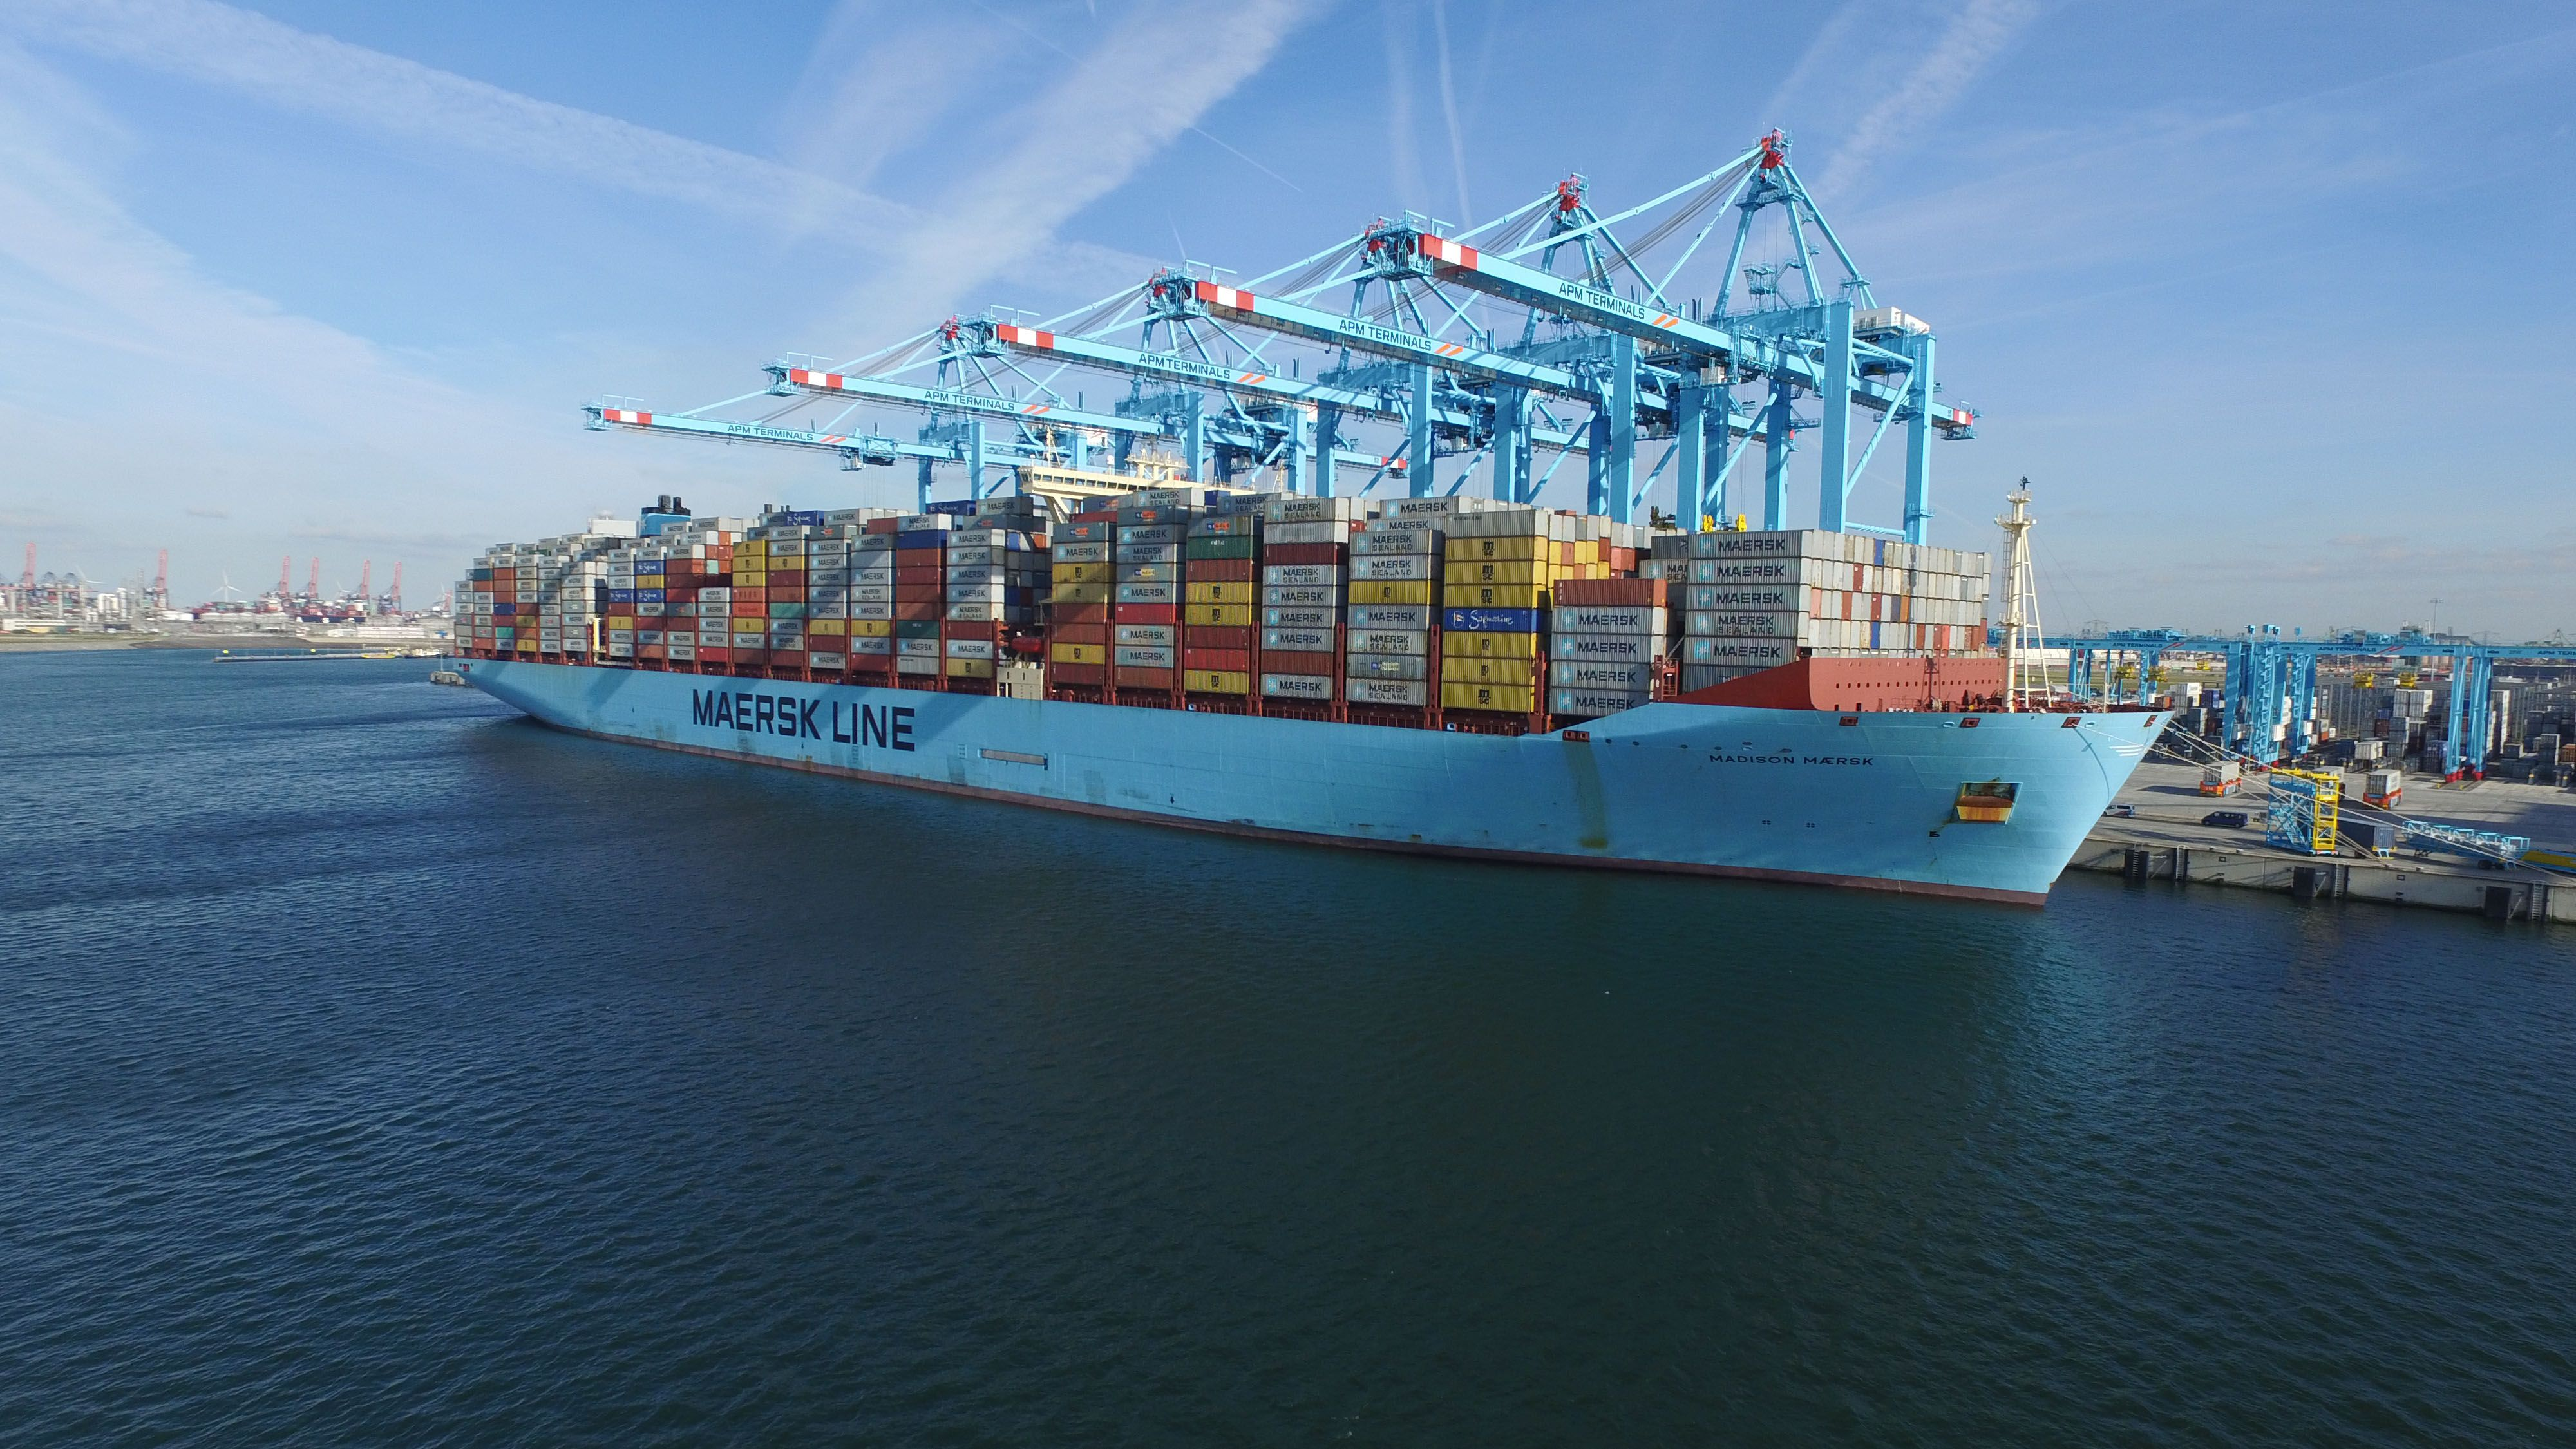 huge container ship in port of Rotterdam